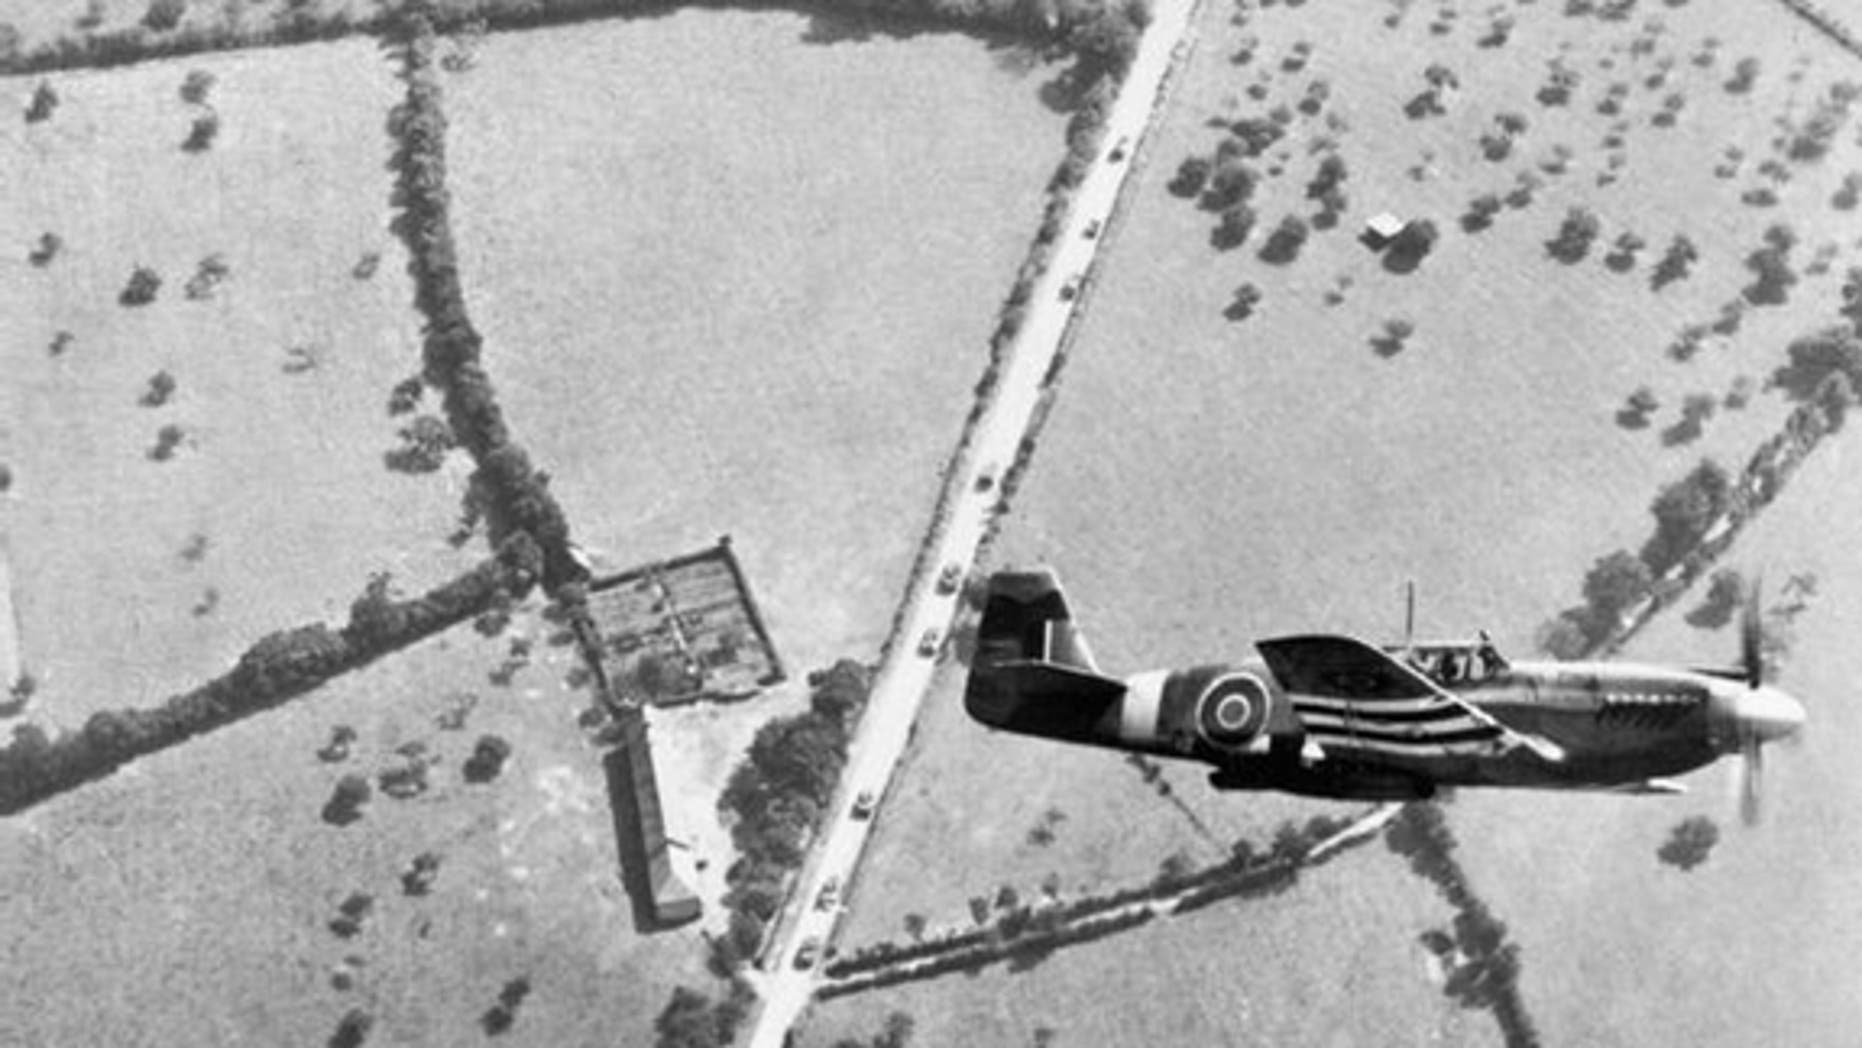 A wartime Mustang aircraft from 2 (Army Cooperation) Squadron in flight (library image).